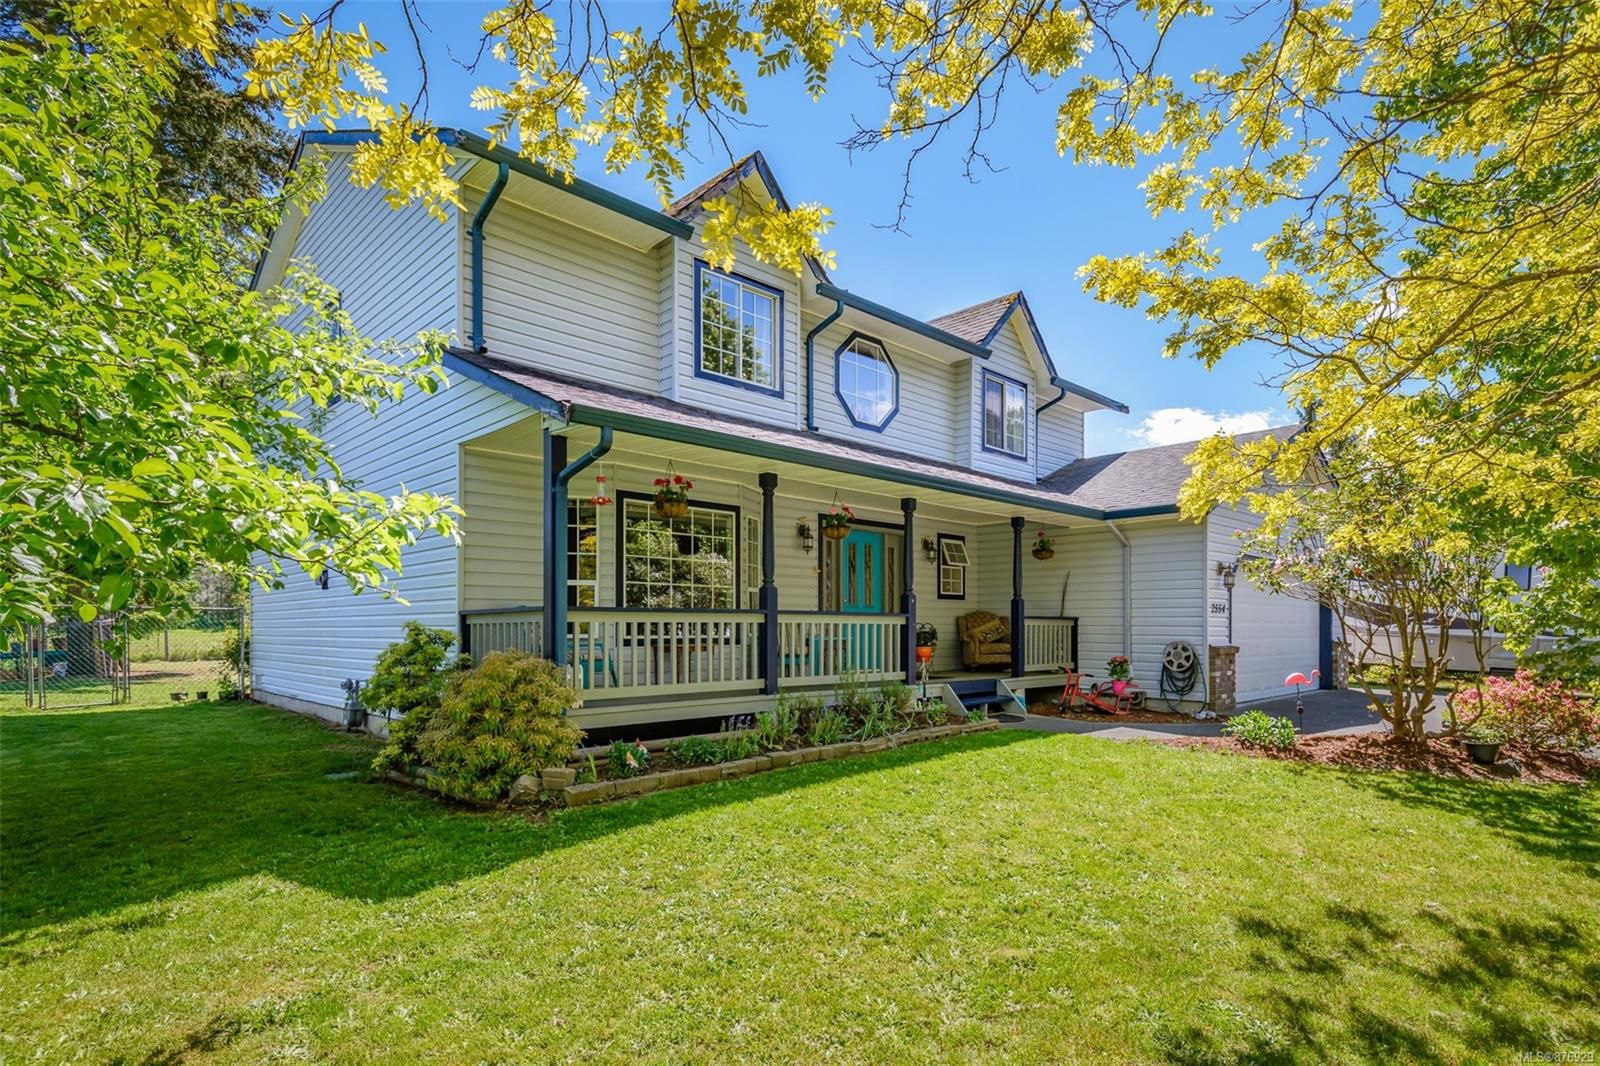 Main Photo: 2554 Falcon Crest Dr in : CV Courtenay West House for sale (Comox Valley)  : MLS®# 876929